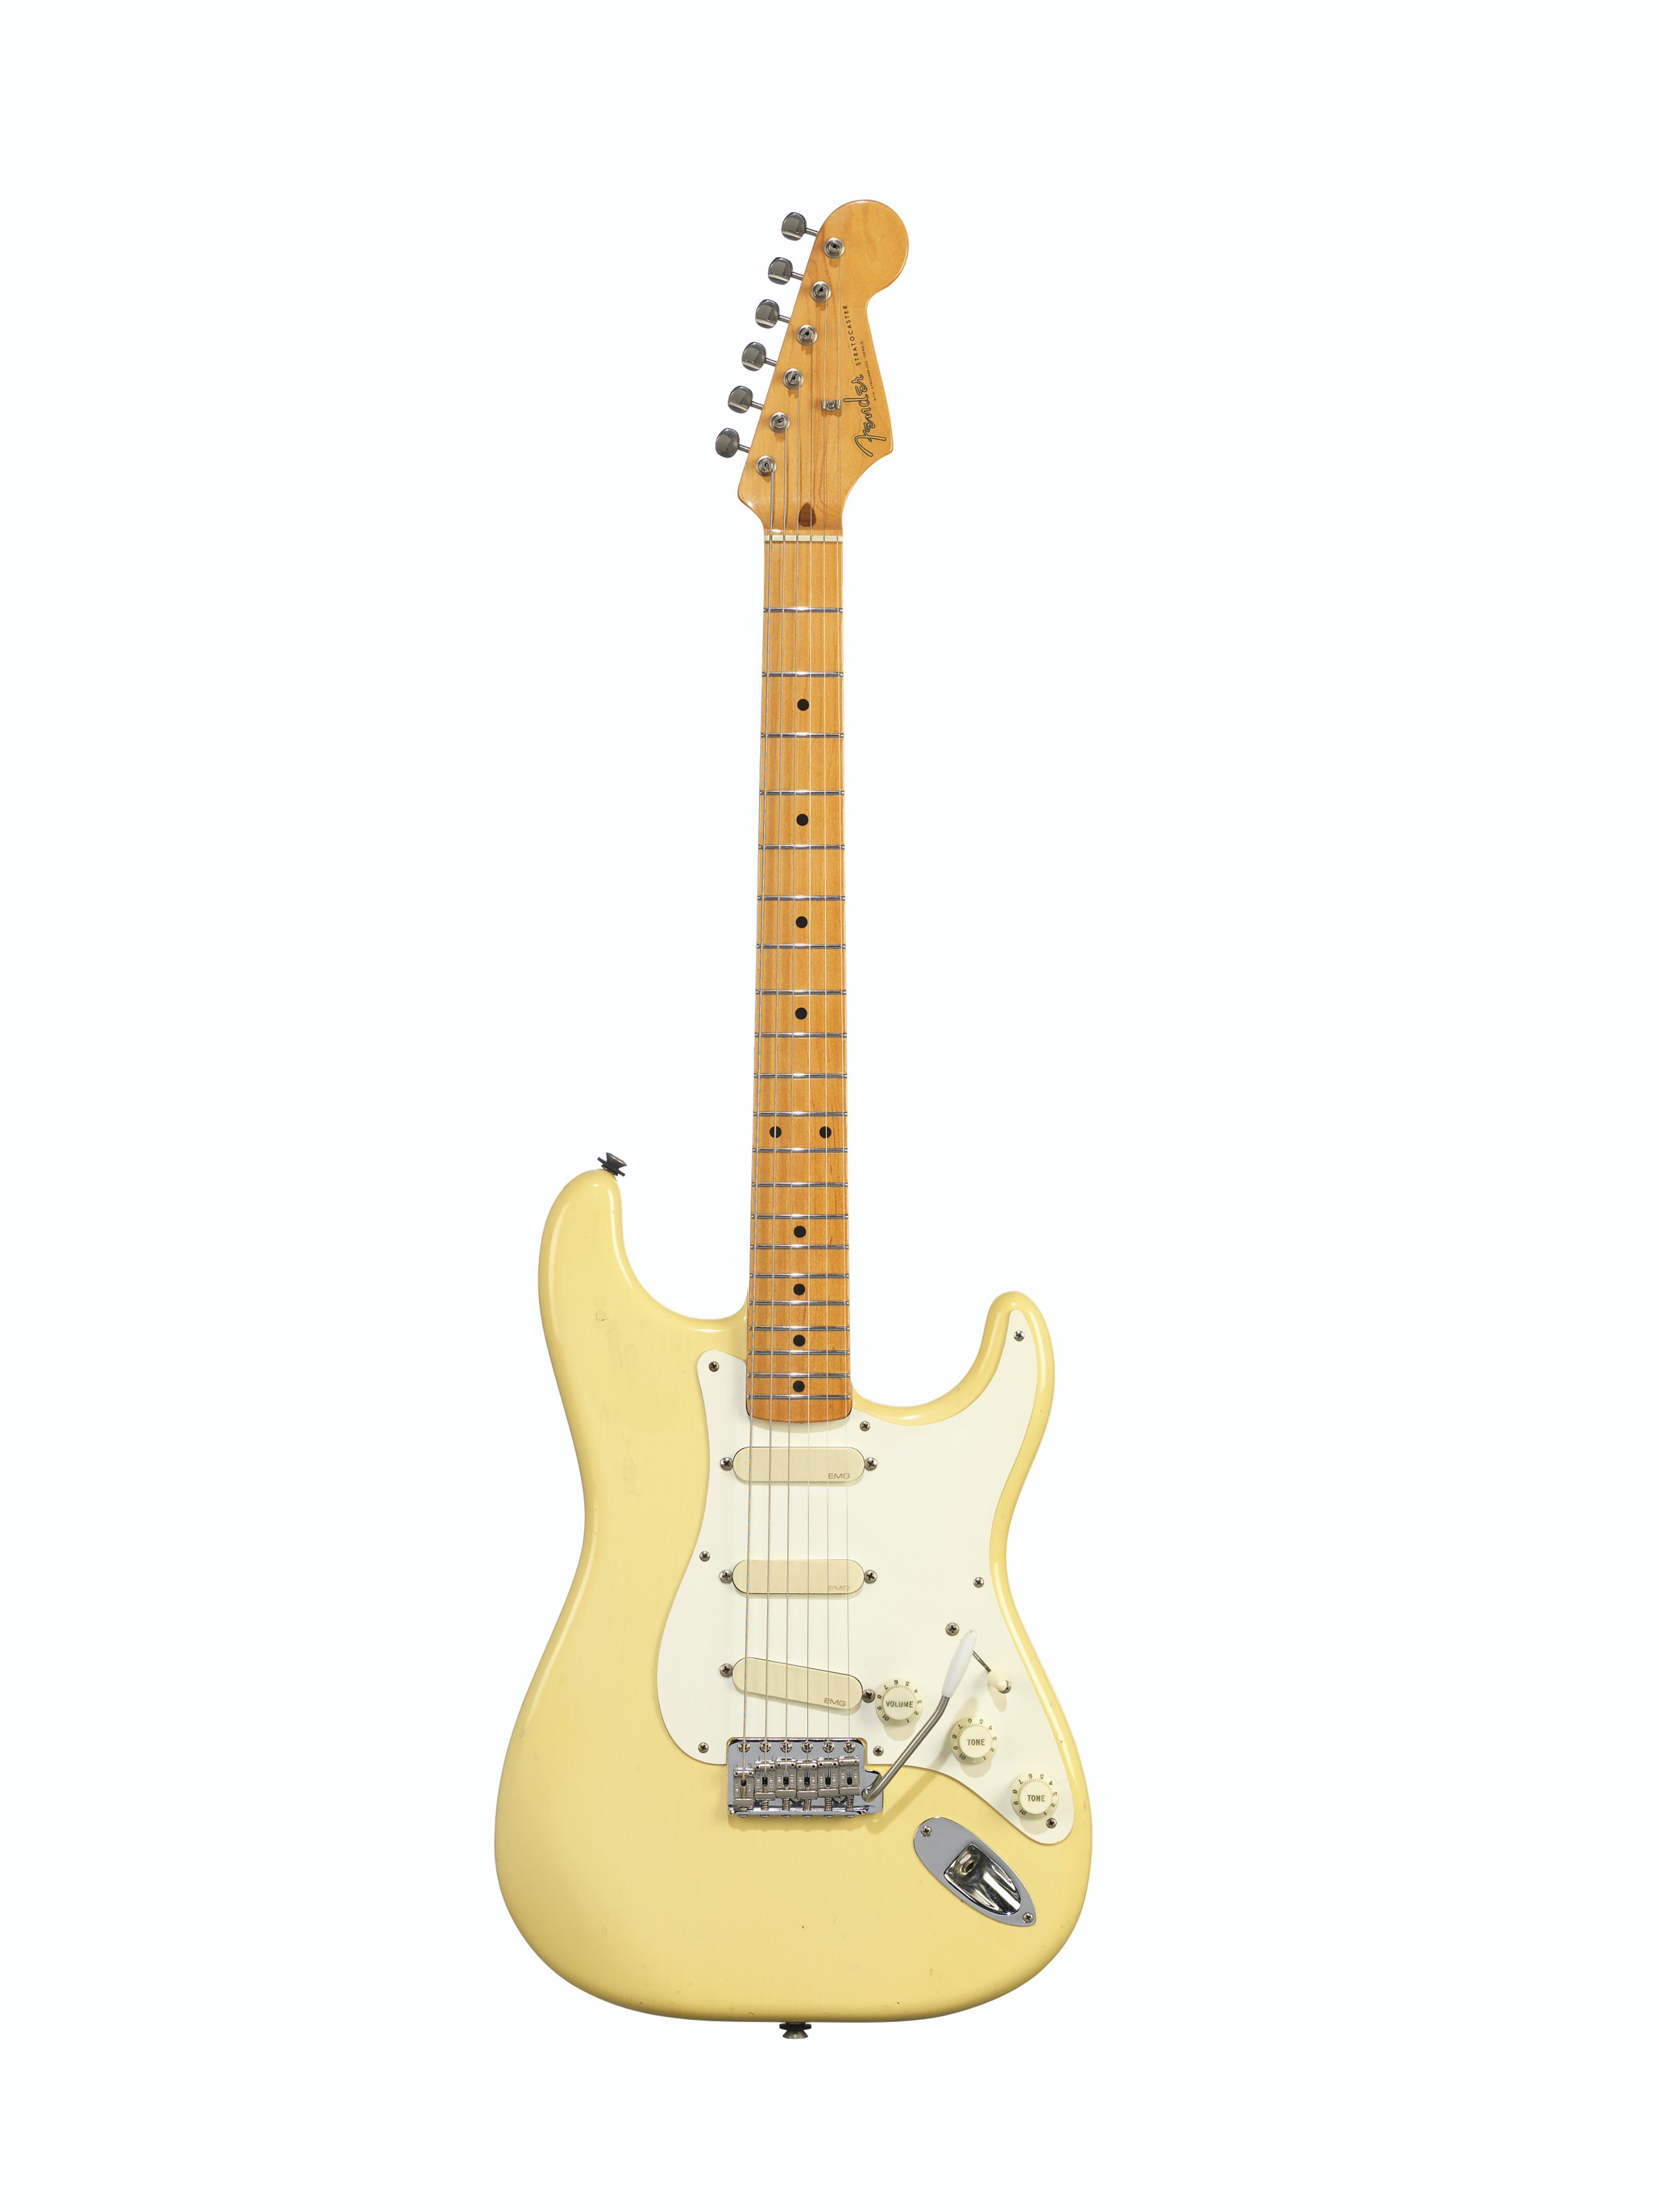 FENDER ELECTRIC INSTRUMENT COMPANY, FULLERTON, 1983 and 1989